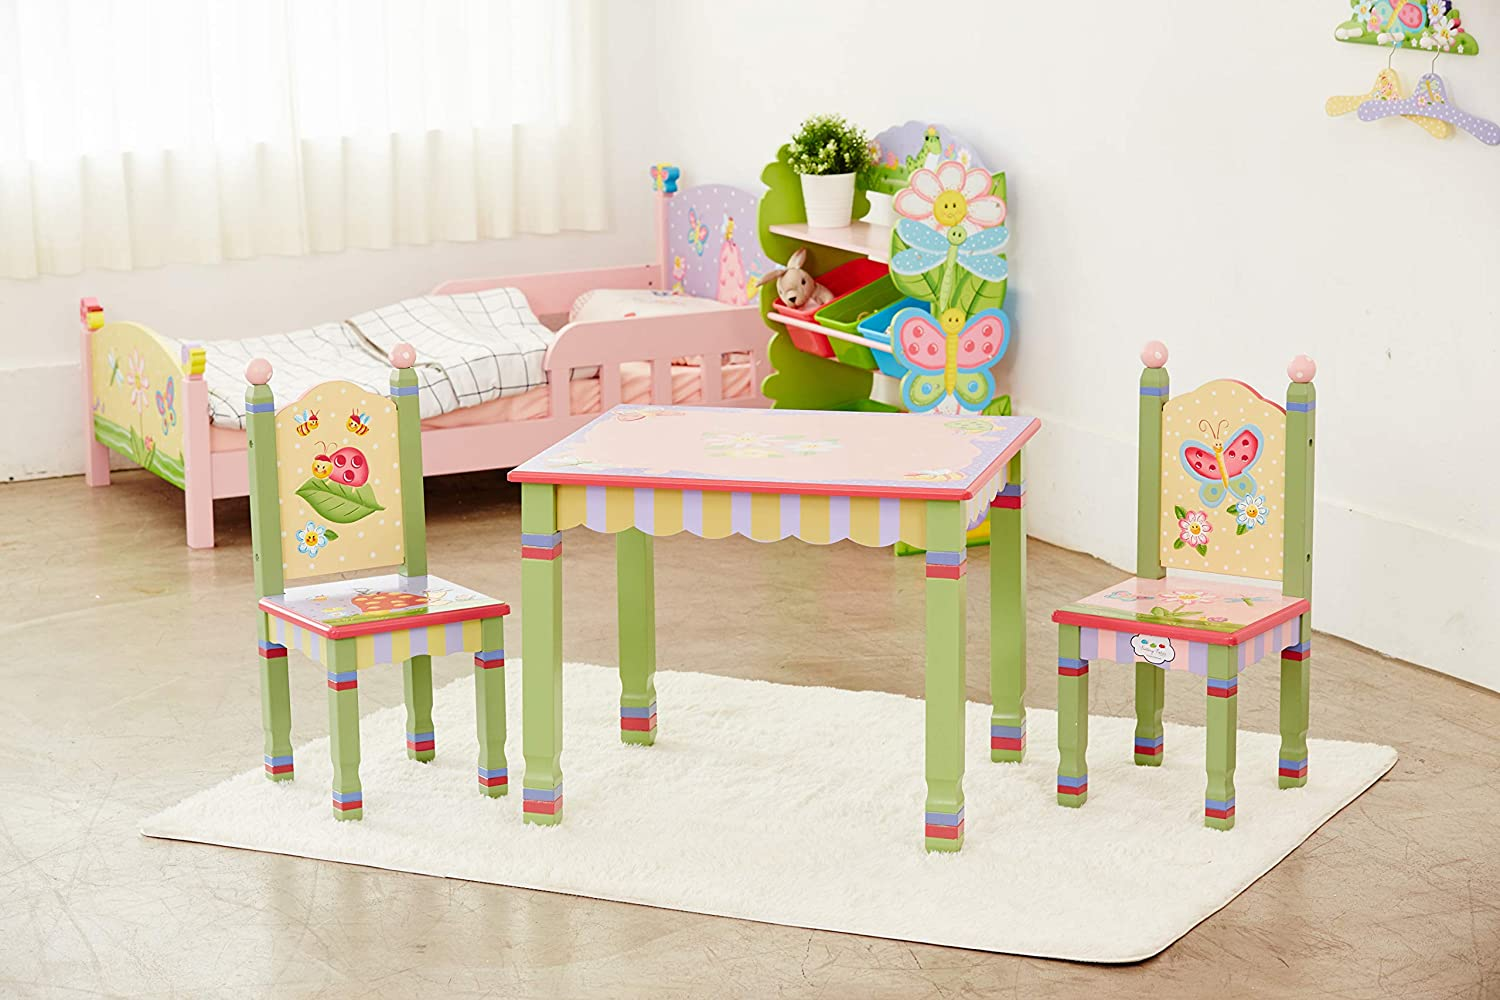 Bed, table and chair for kids in pastel colors